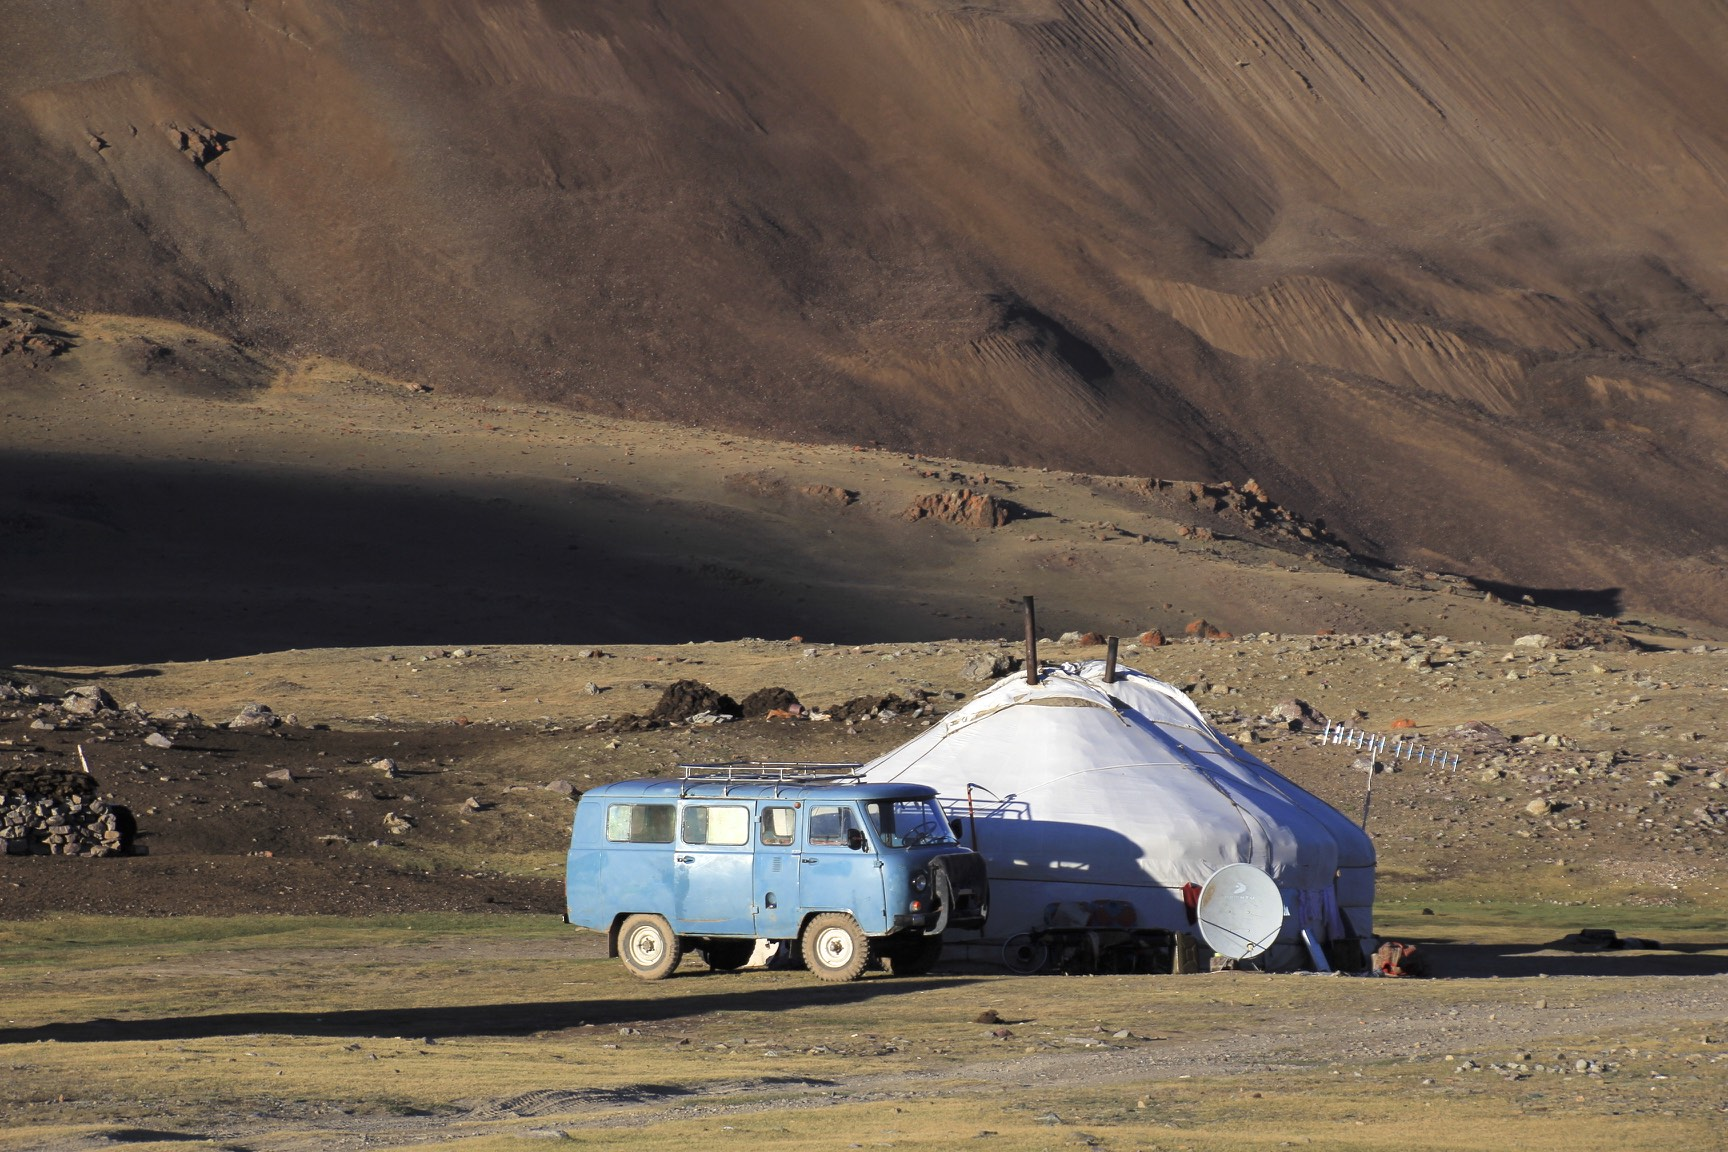 Entrance to the National Park of Tavan Bogd in Western Mongolia